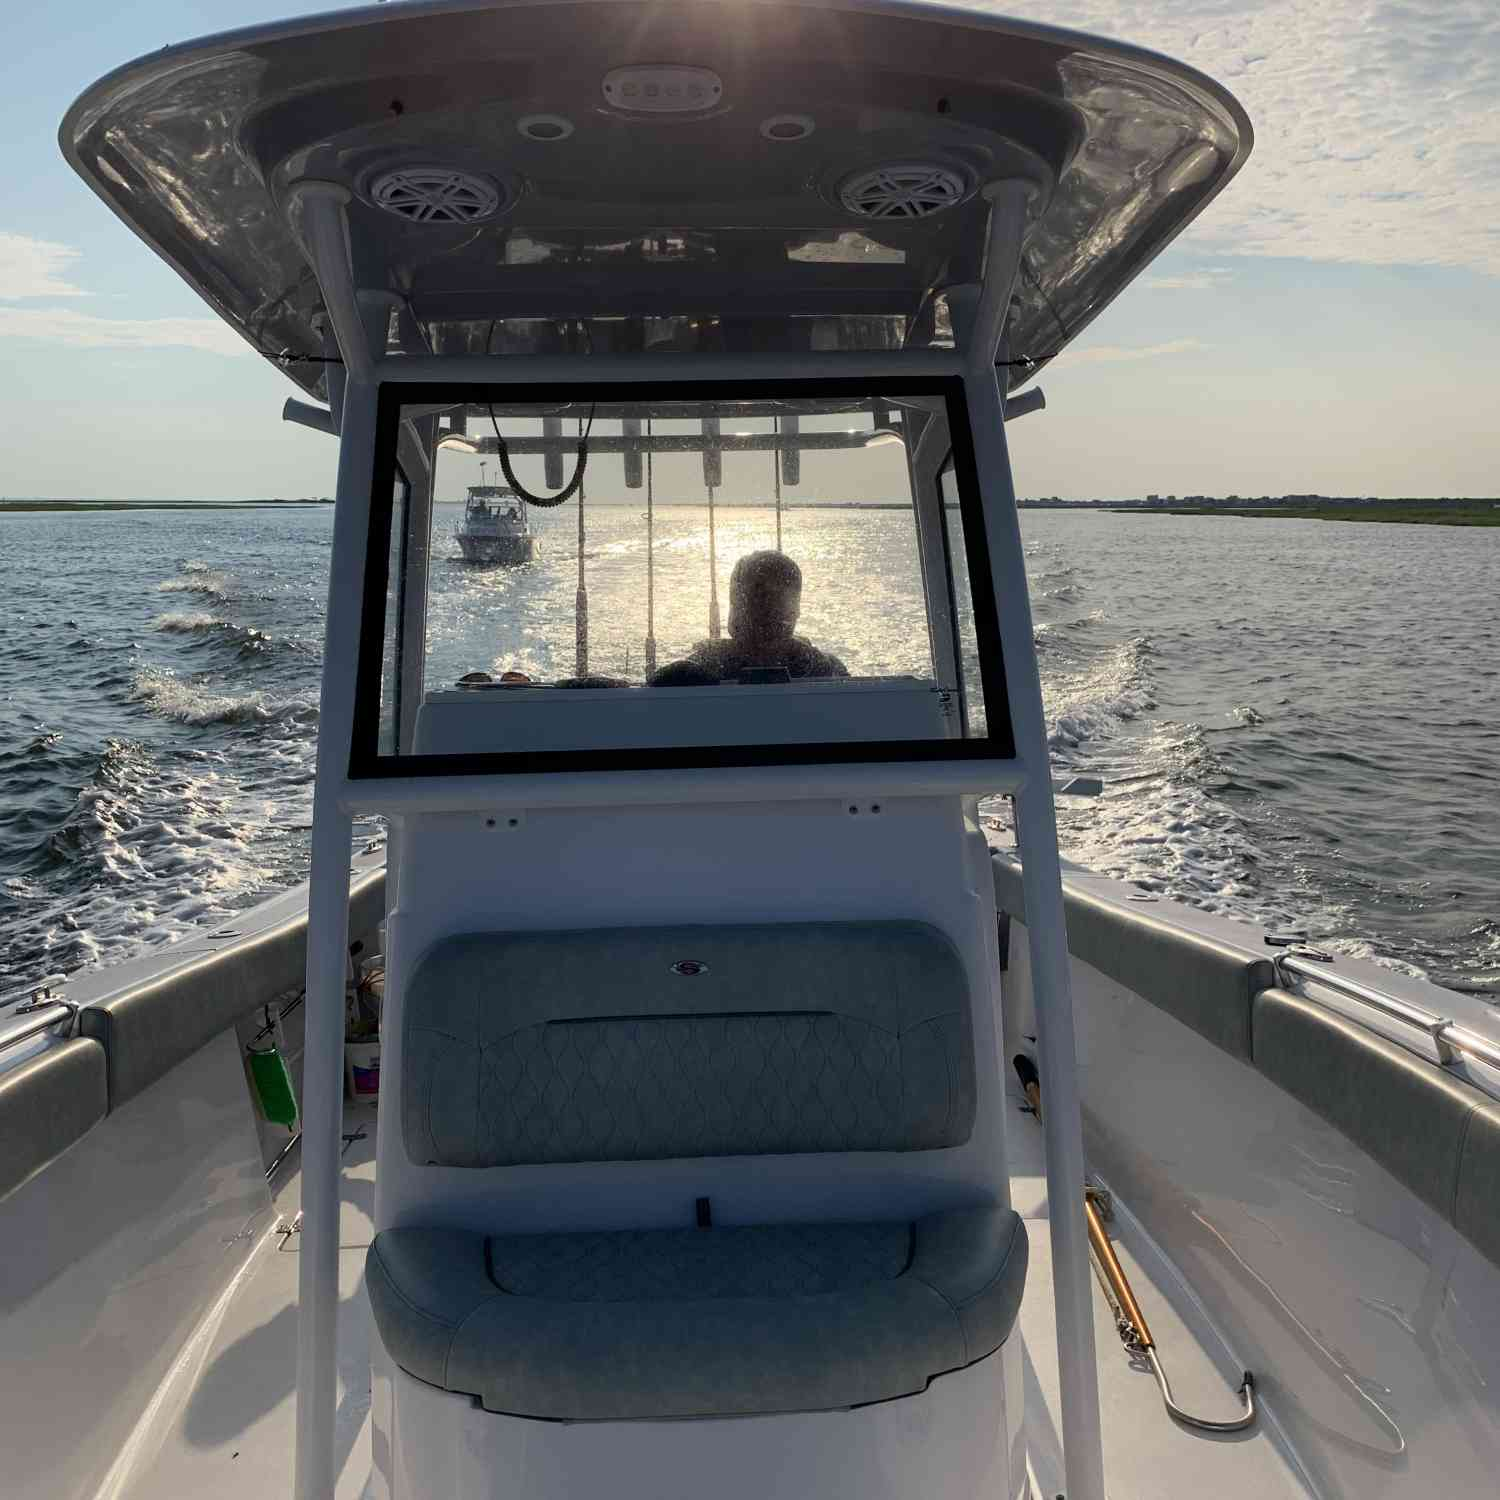 Title: The adventure boys - On board their Sportsman Open 252 Center Console - Location: Long Island ny. Participating in the Photo Contest #SportsmanSeptember2020